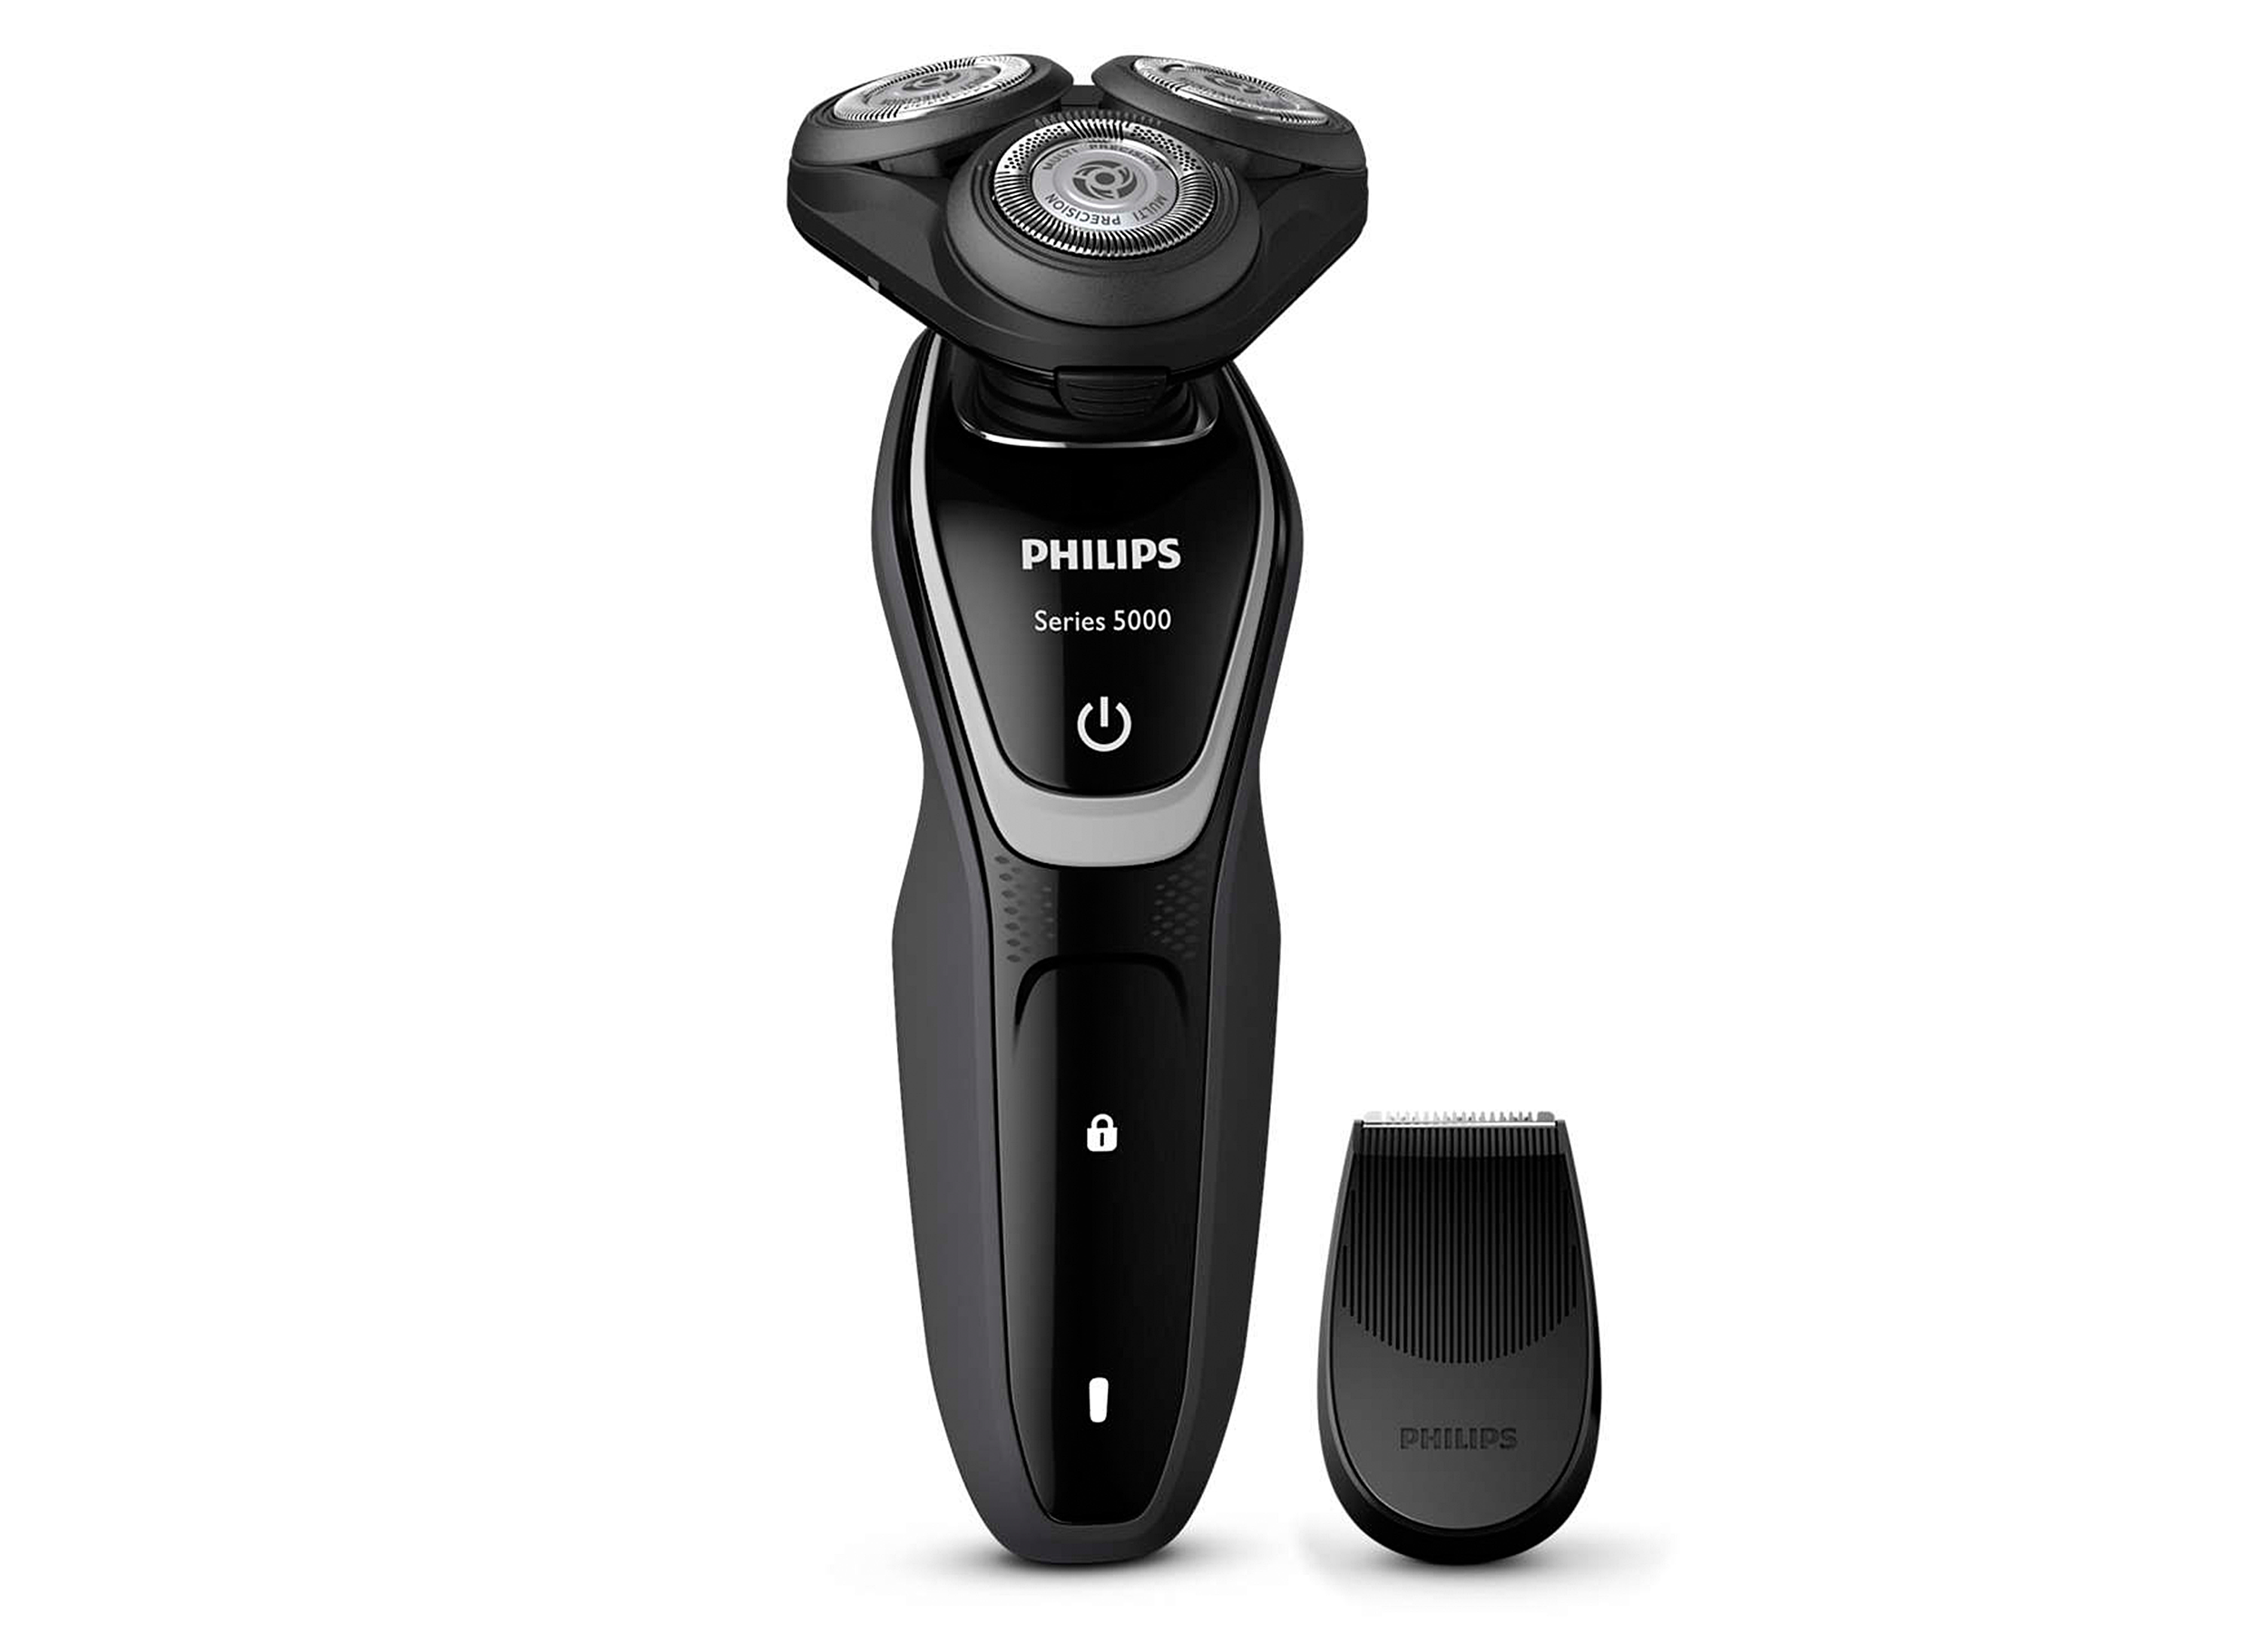 Philips Series 5000 S5110/06